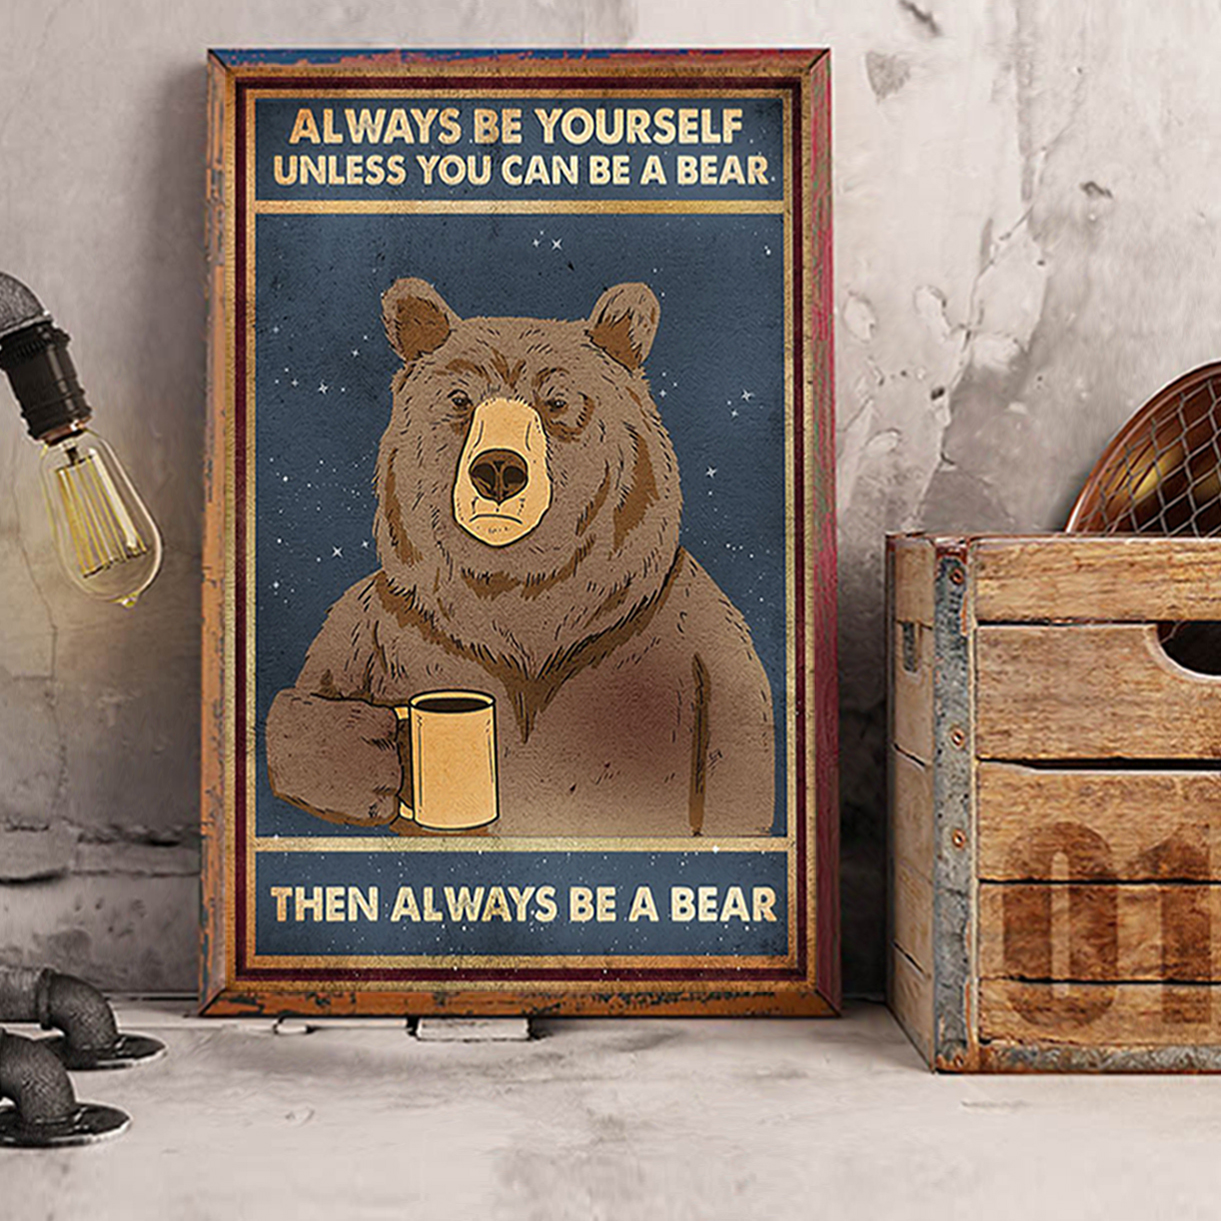 Always be yourself unless you can be a bear poster A3